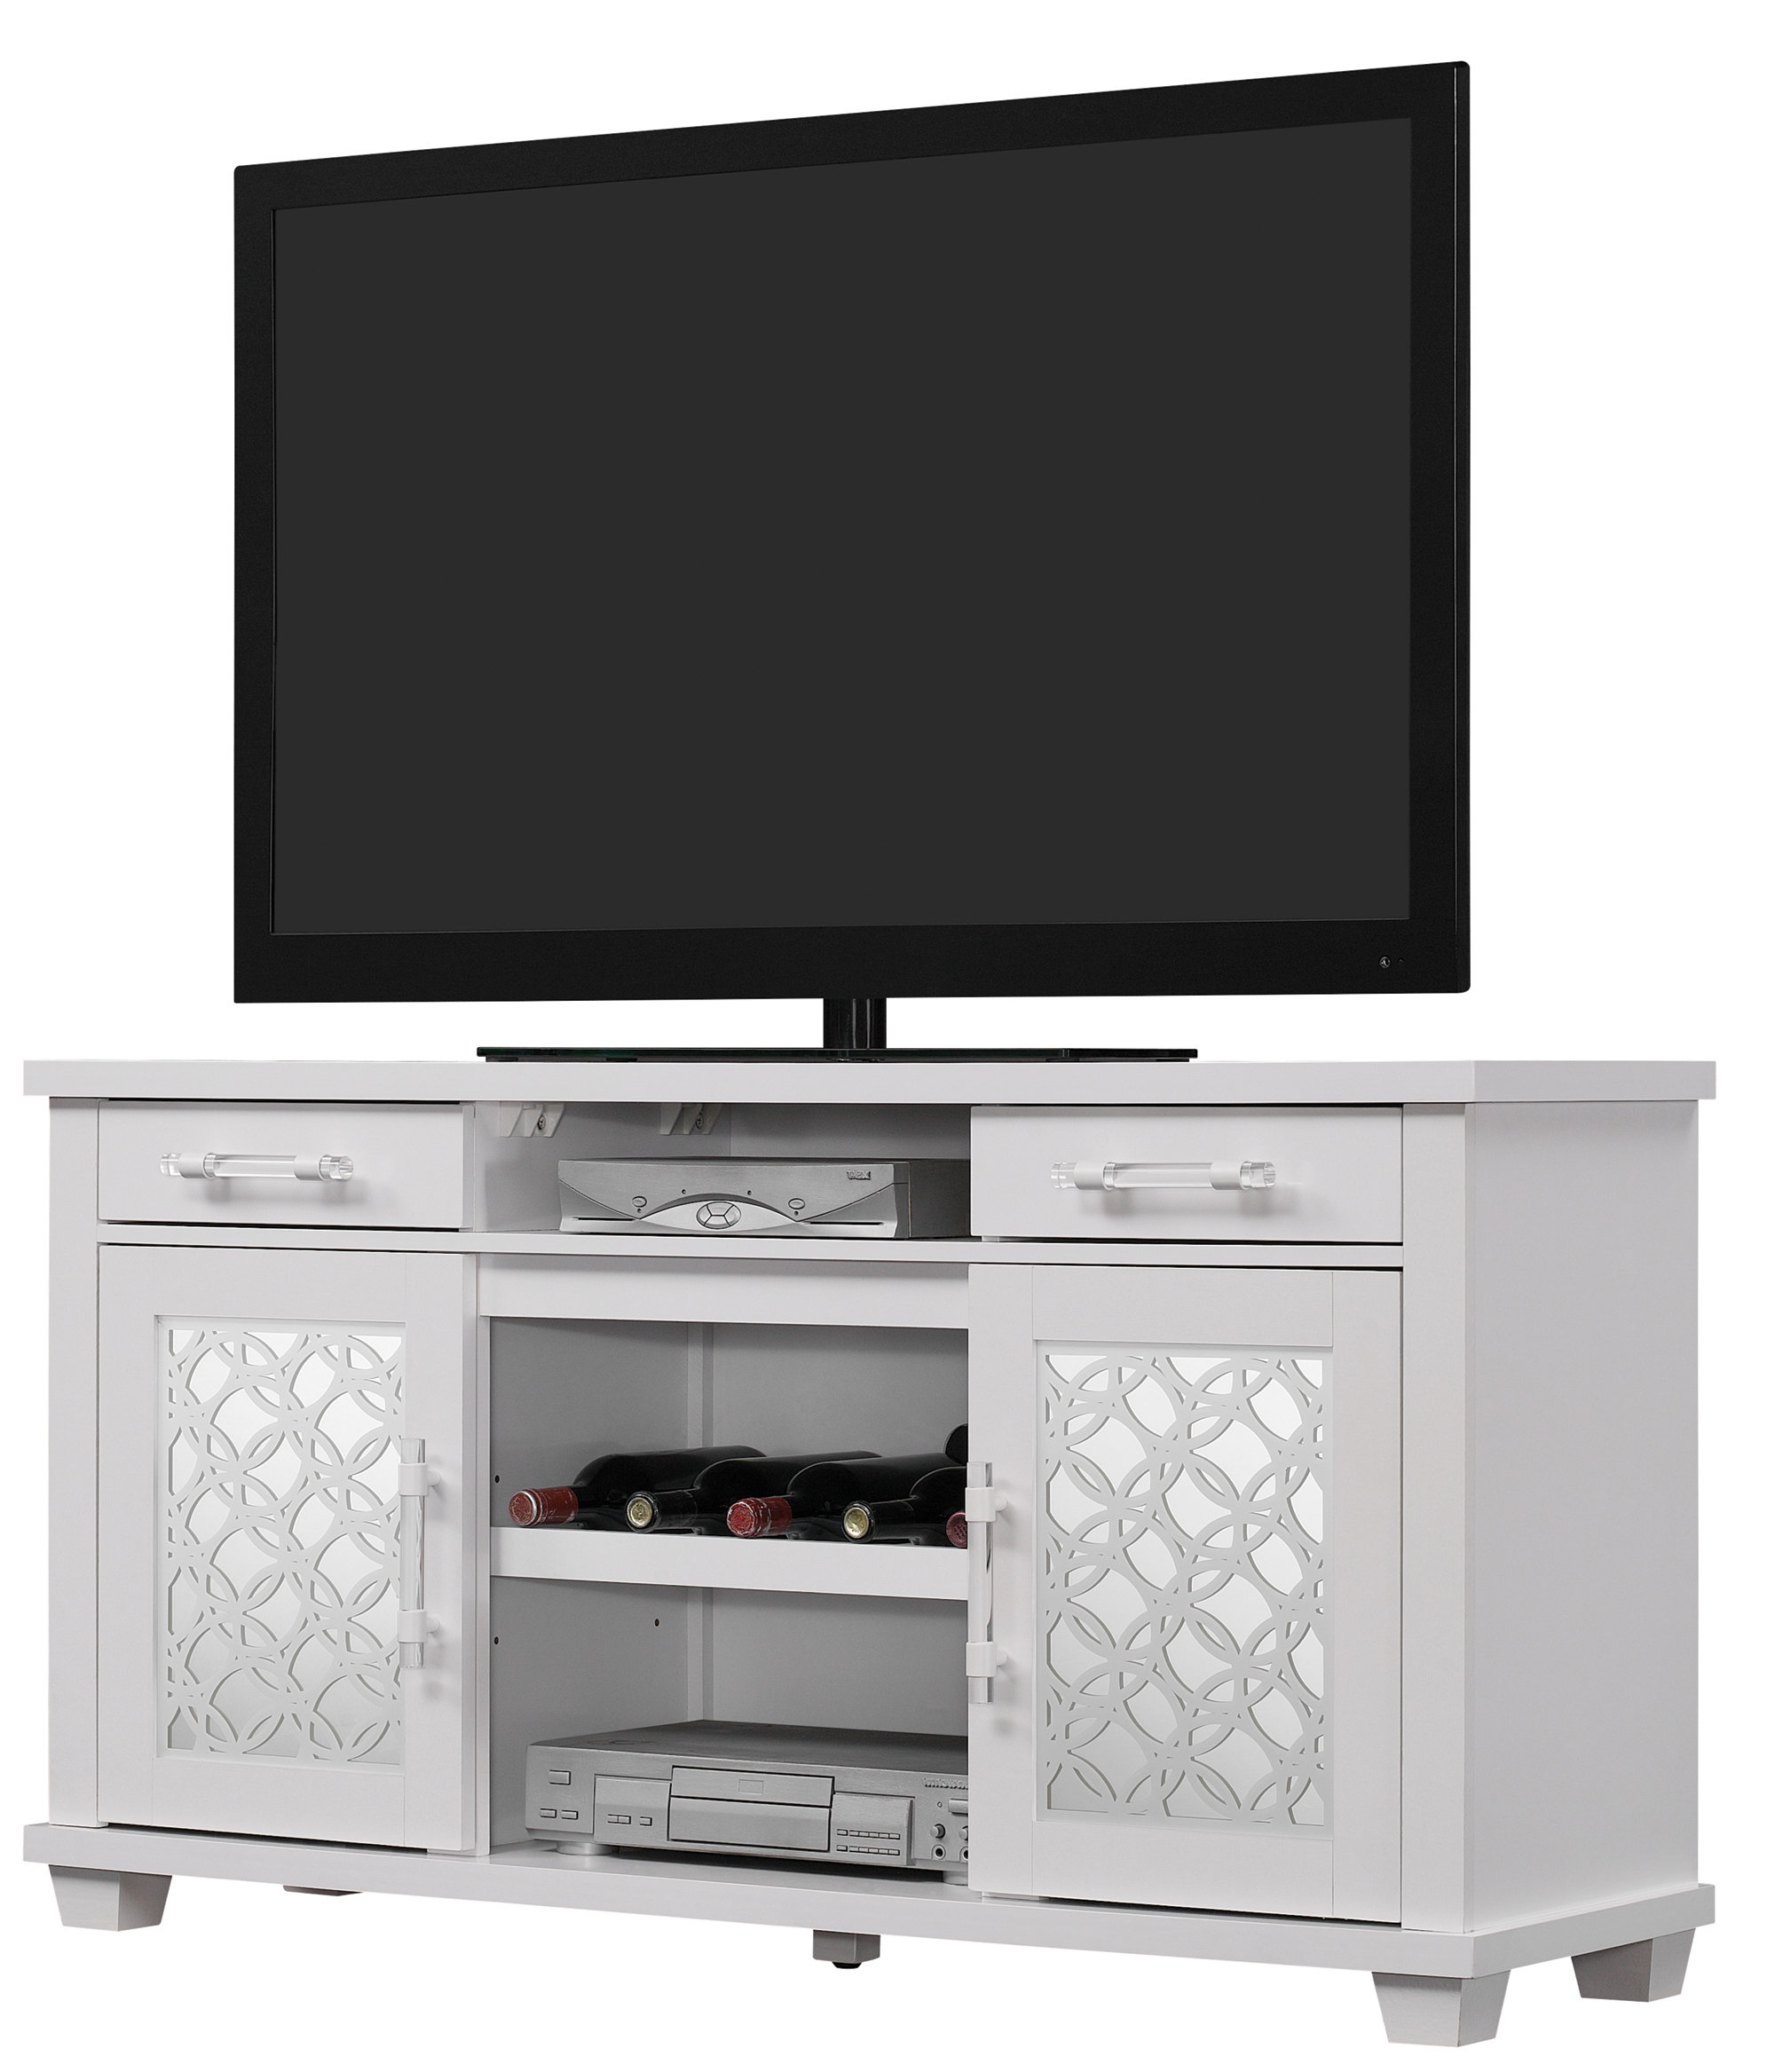 Ophelia & Co. Brittany Tv Stand & Reviews | Wayfair (View 7 of 20)